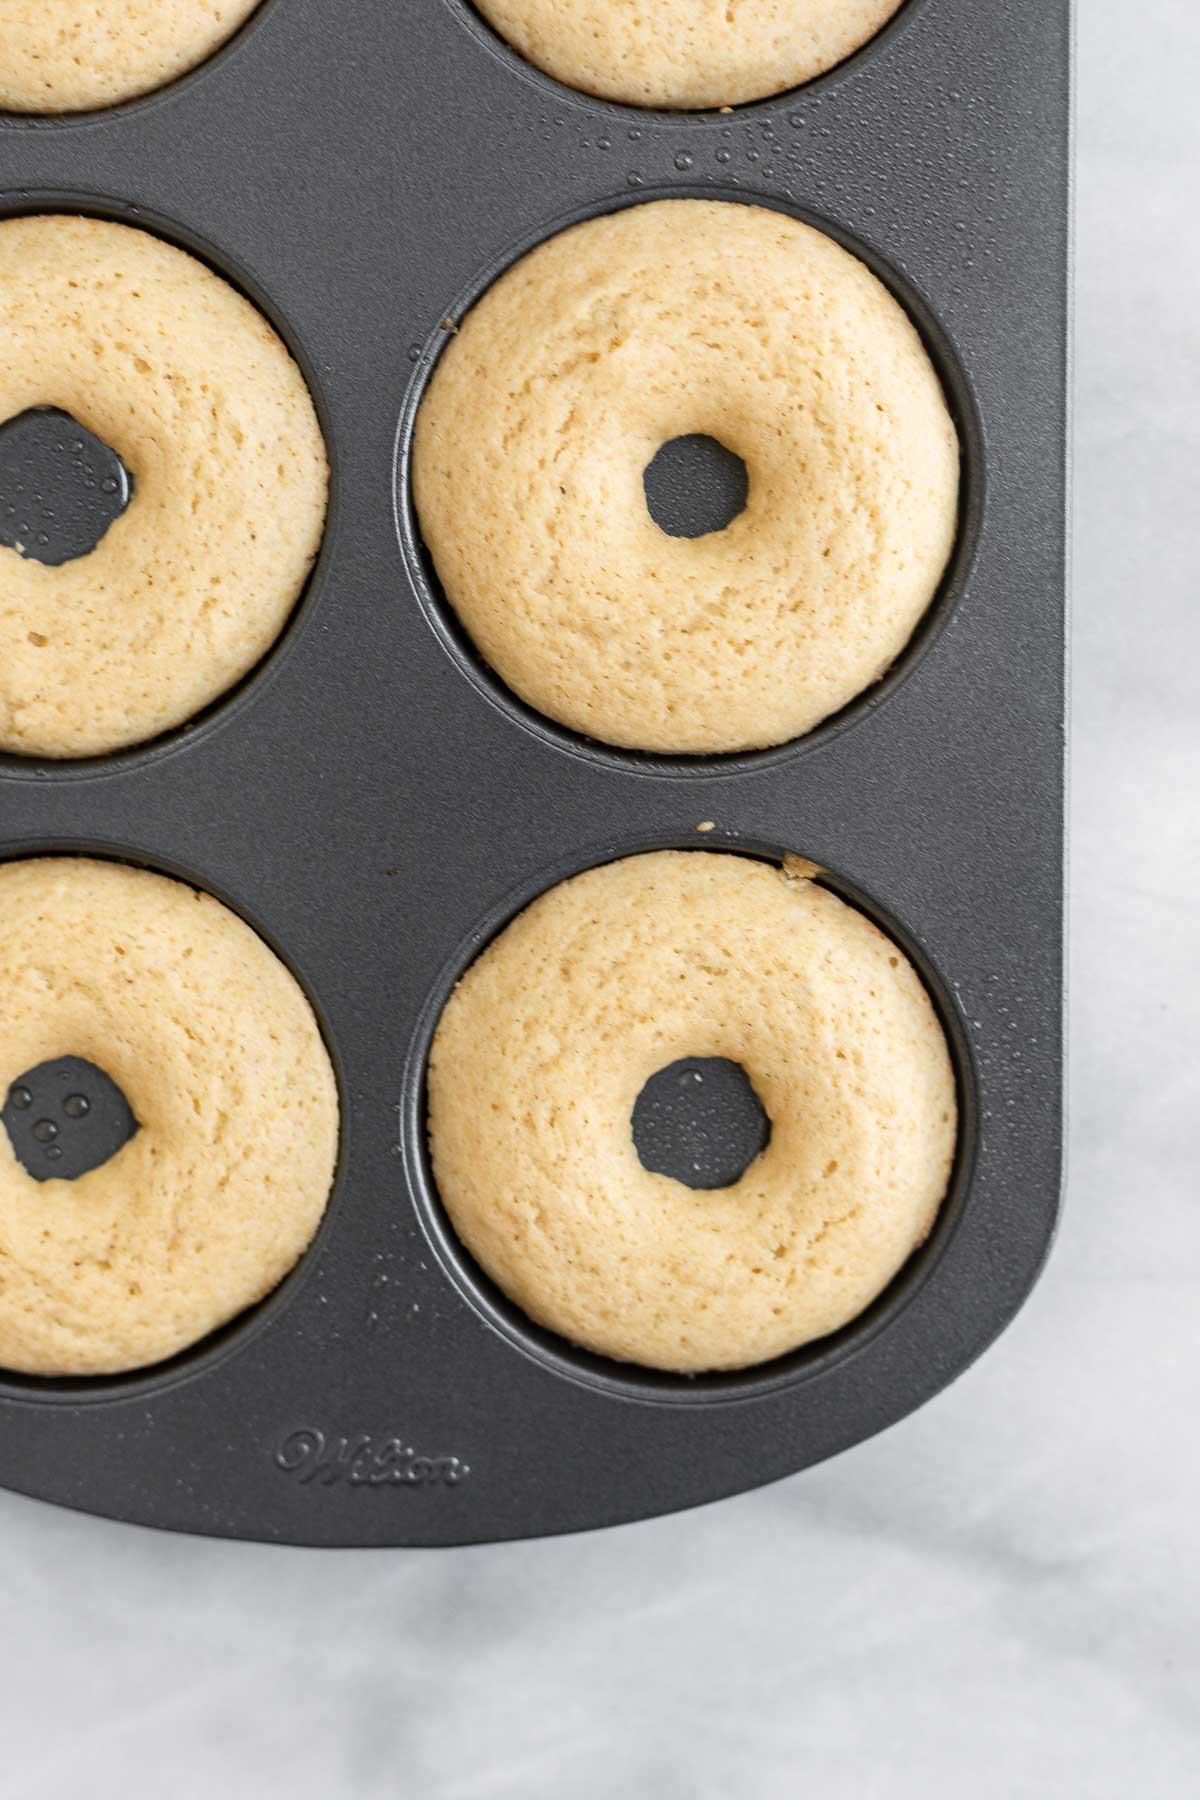 Donuts in the pan after coming out of the oven.